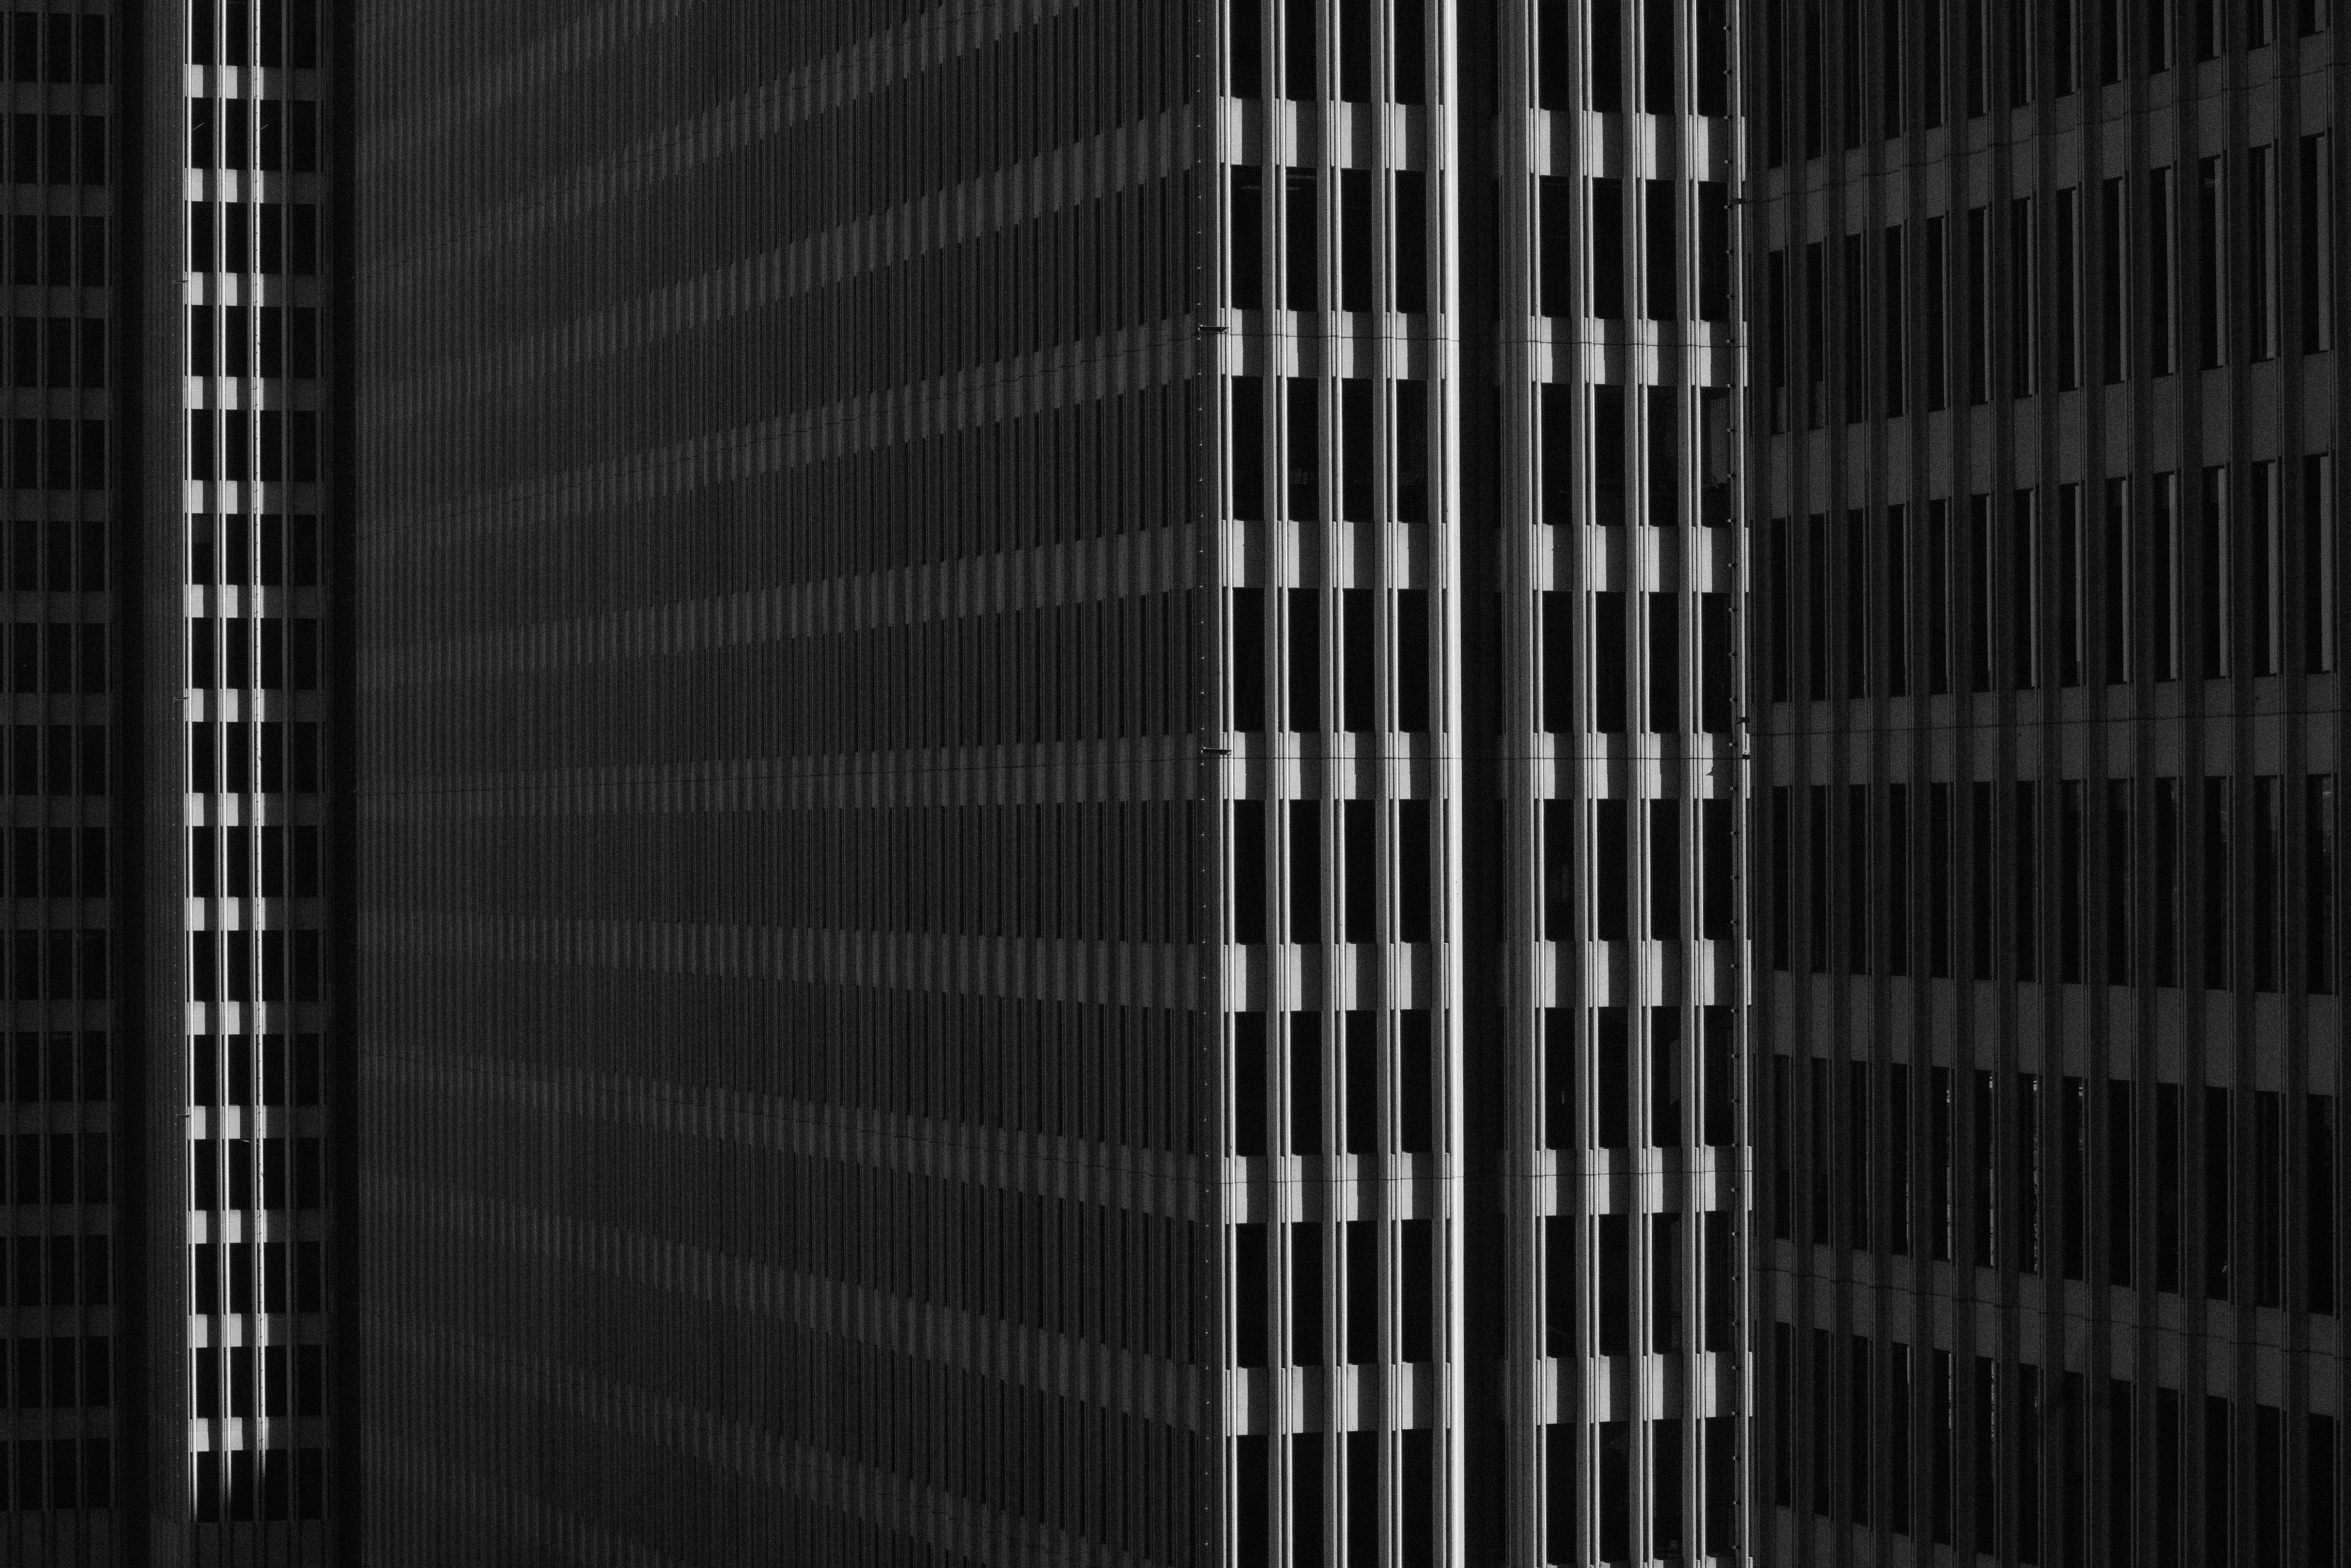 Free stock photo of architectural design, architecture, black and white, buildings